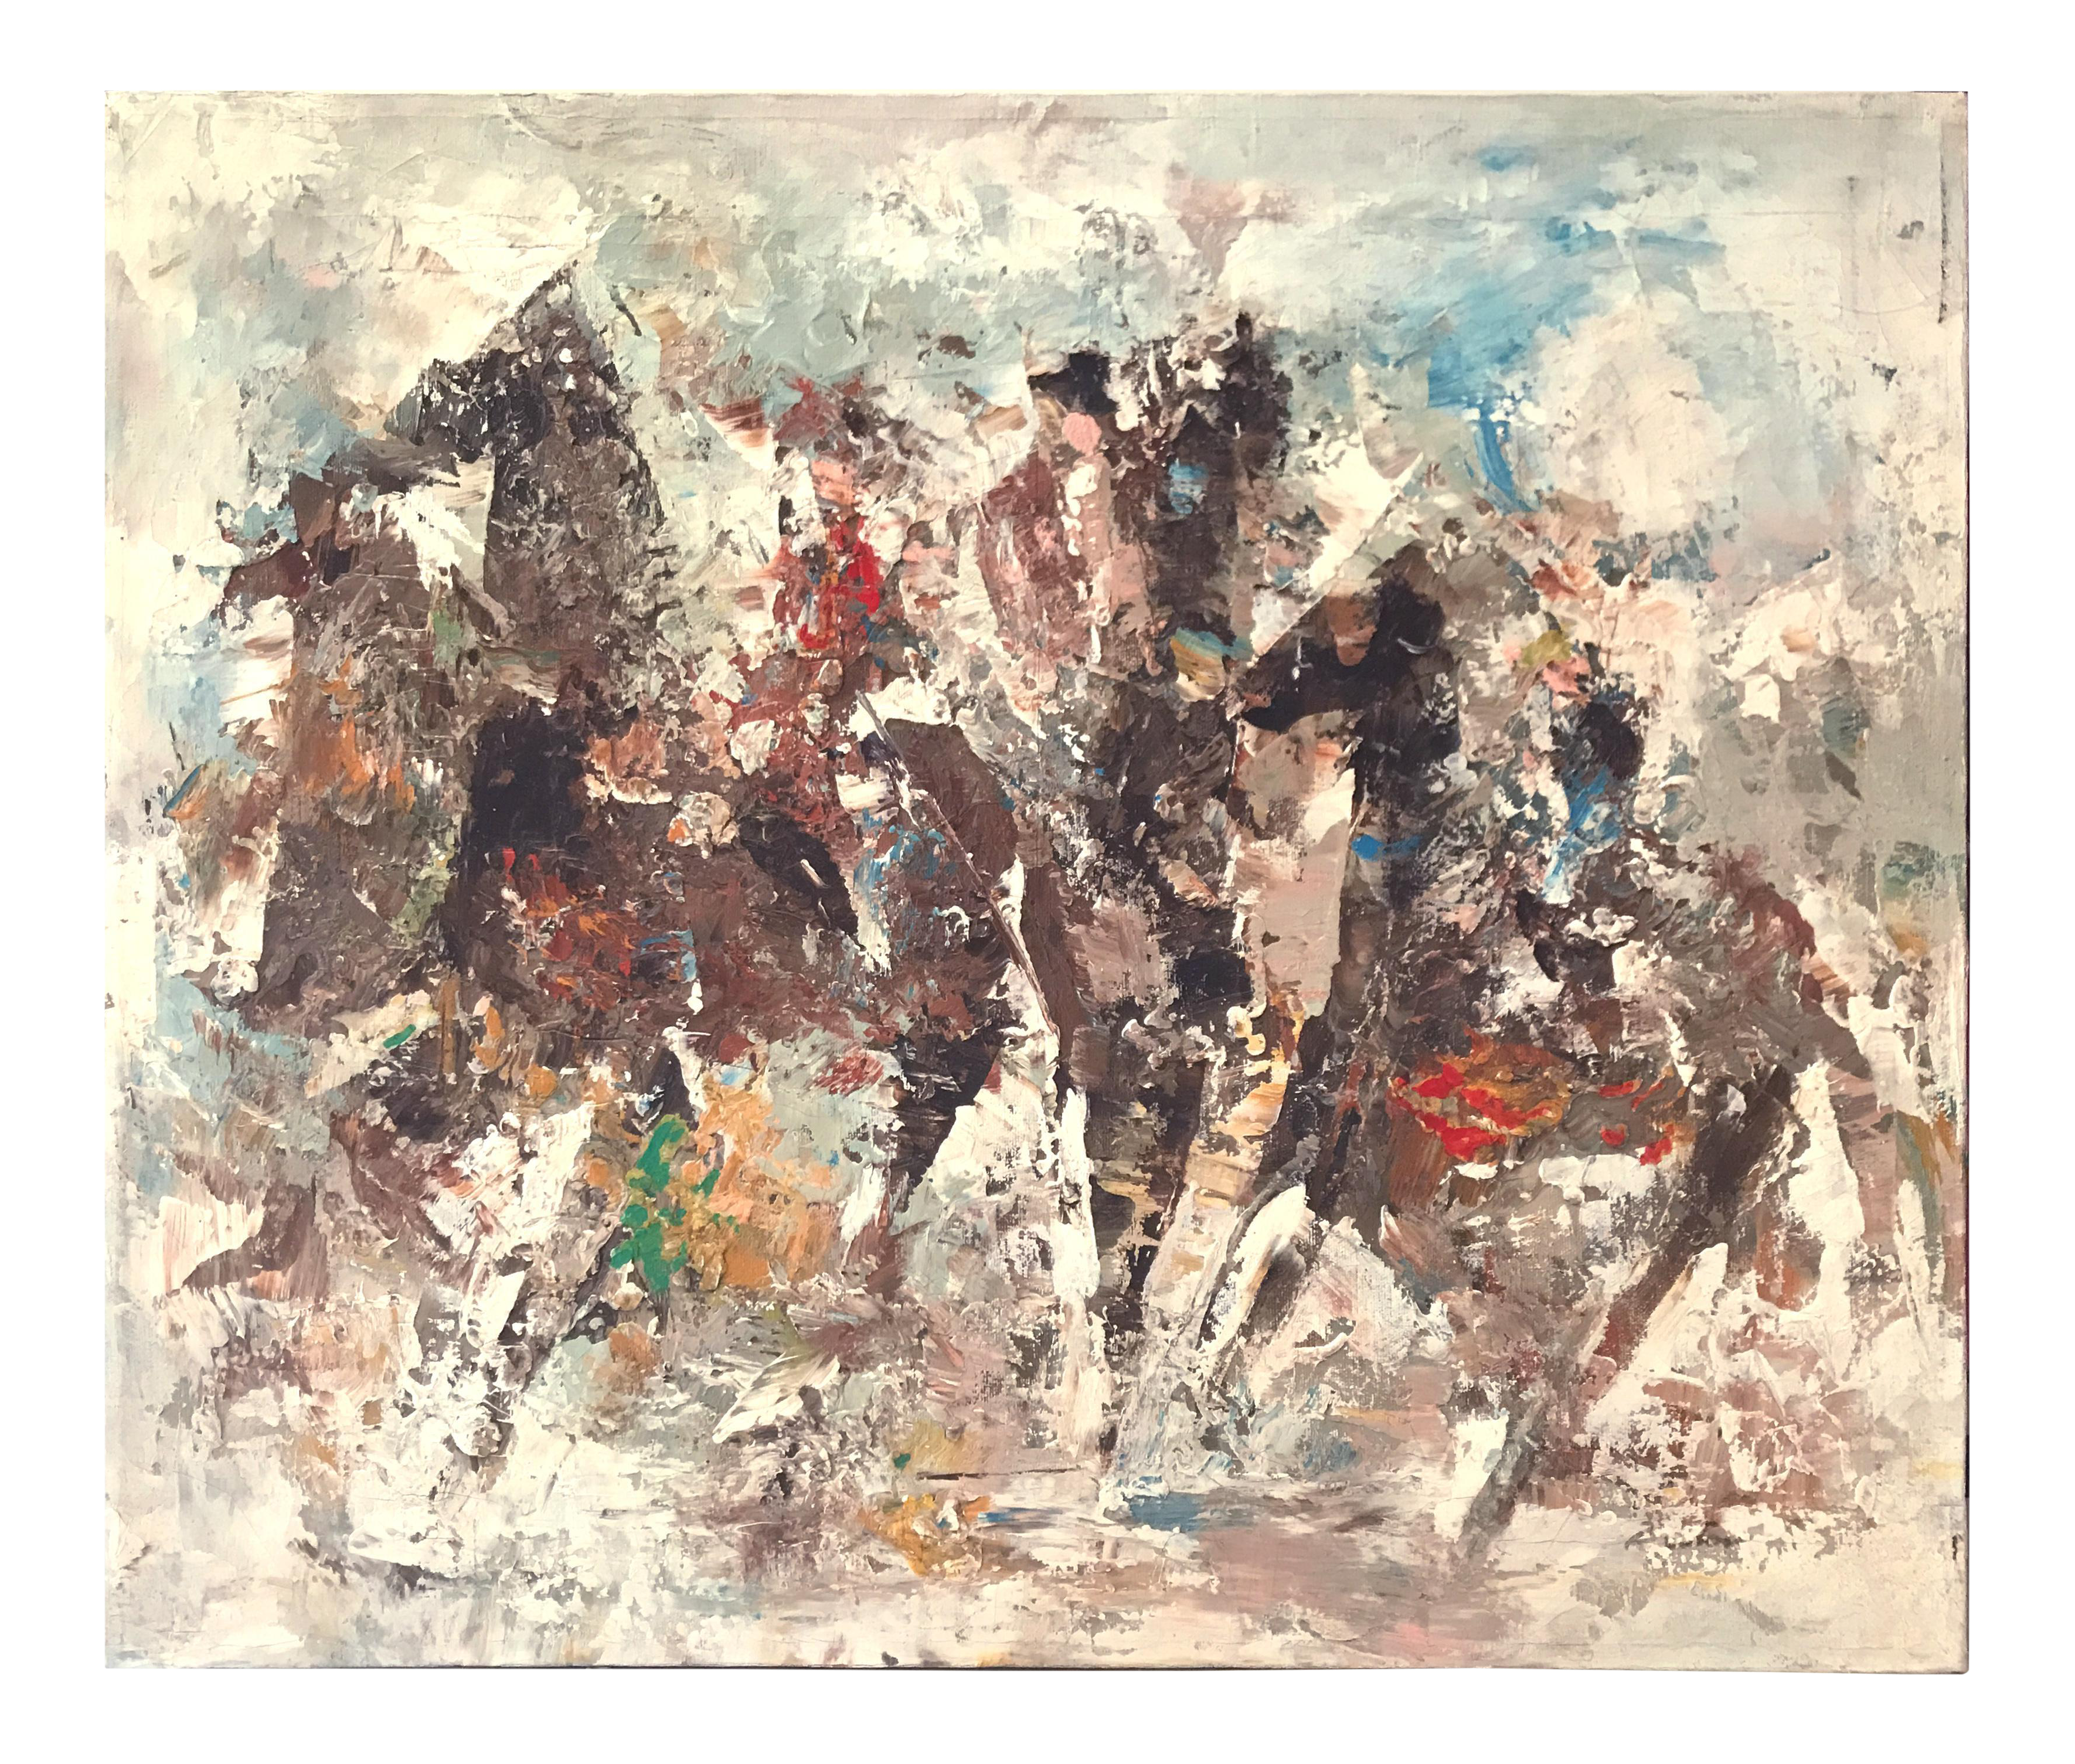 Impressionistic drawing textural. Equestrian scene painting on